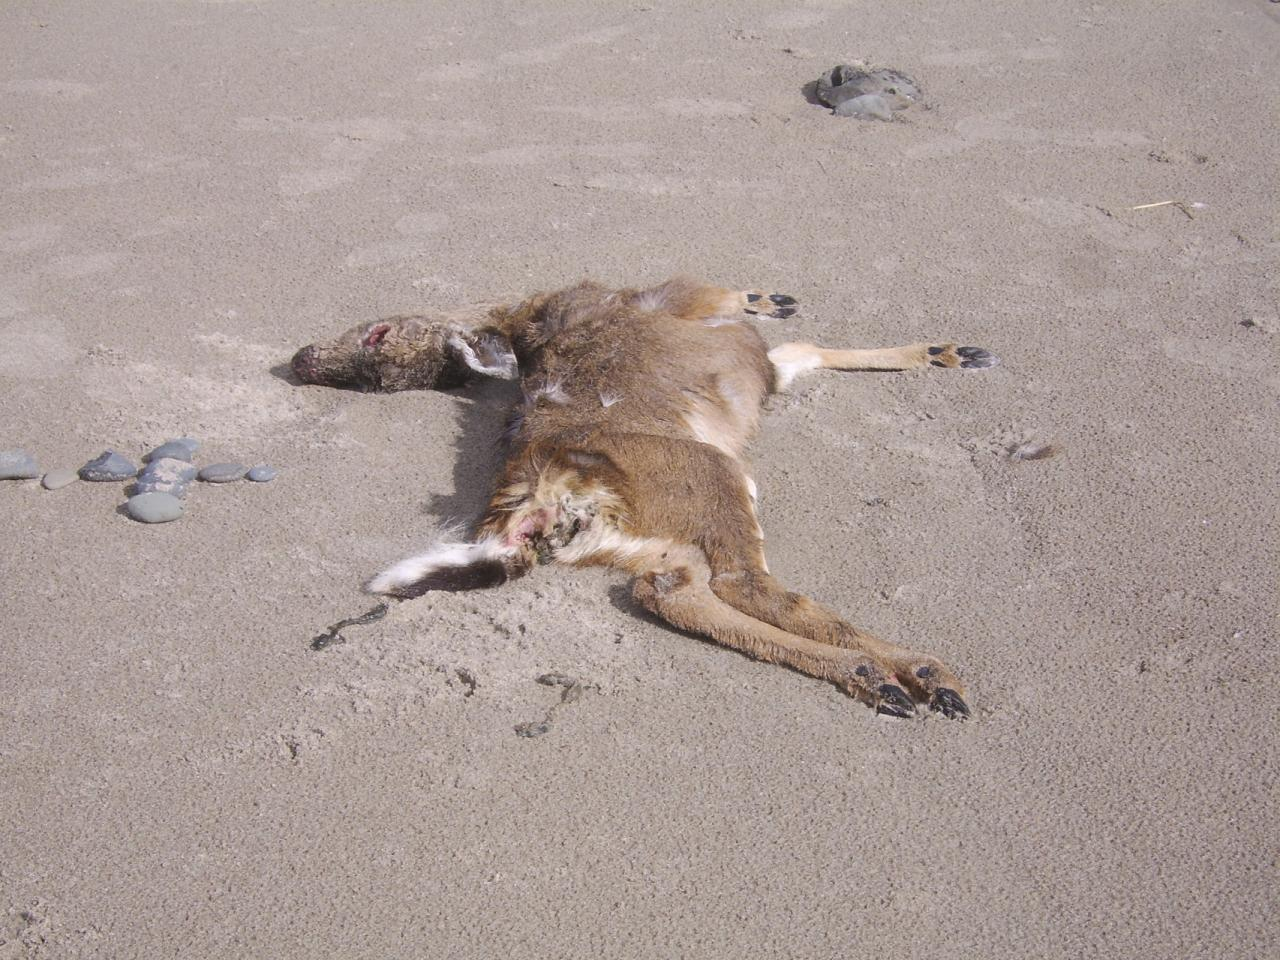 Deer on beach near cliff face just south of shark fin rocks, which is near stairs to beach from cliff approx where 26th st sw would intersect if it extended to beach